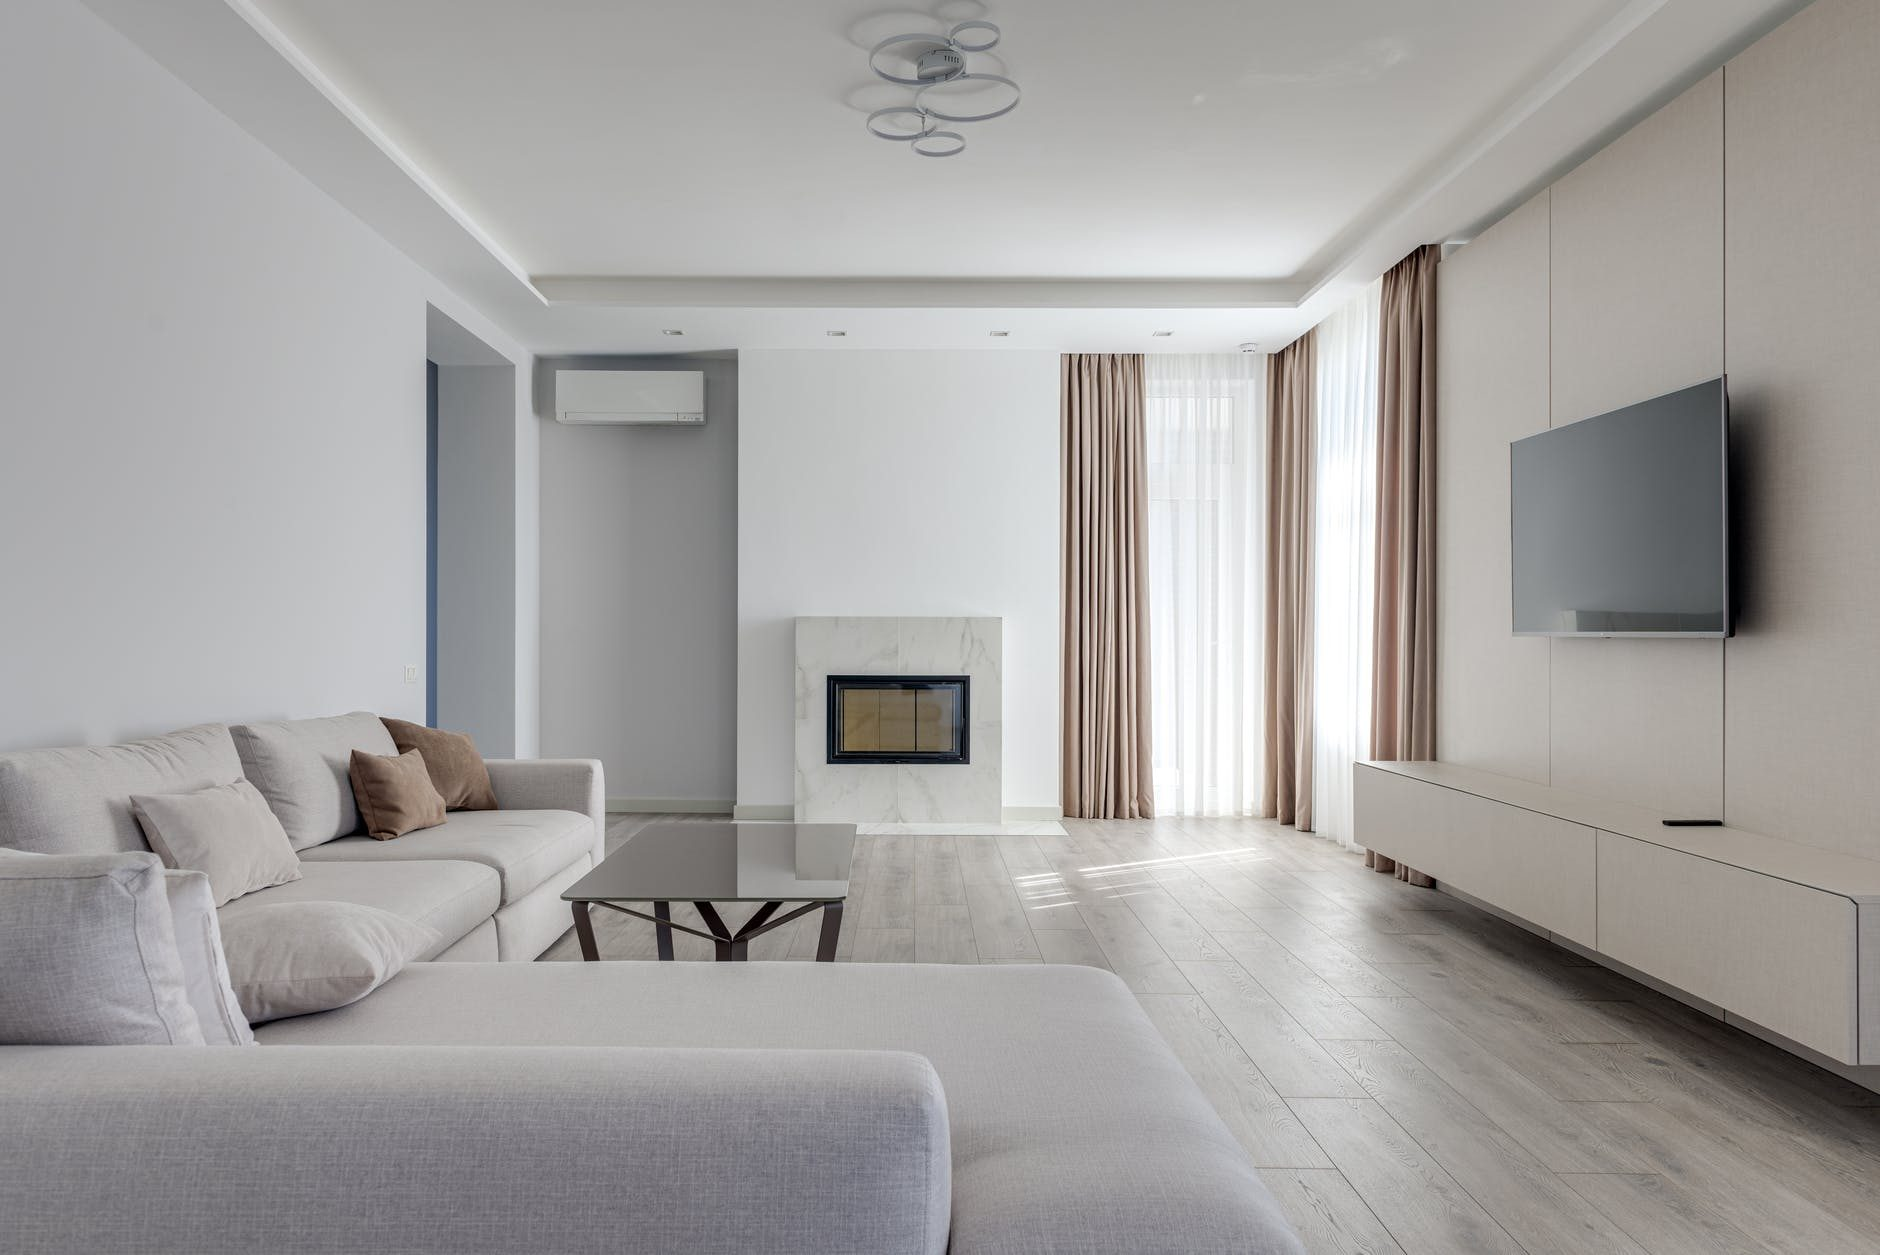 spacious lounge room with soft furniture